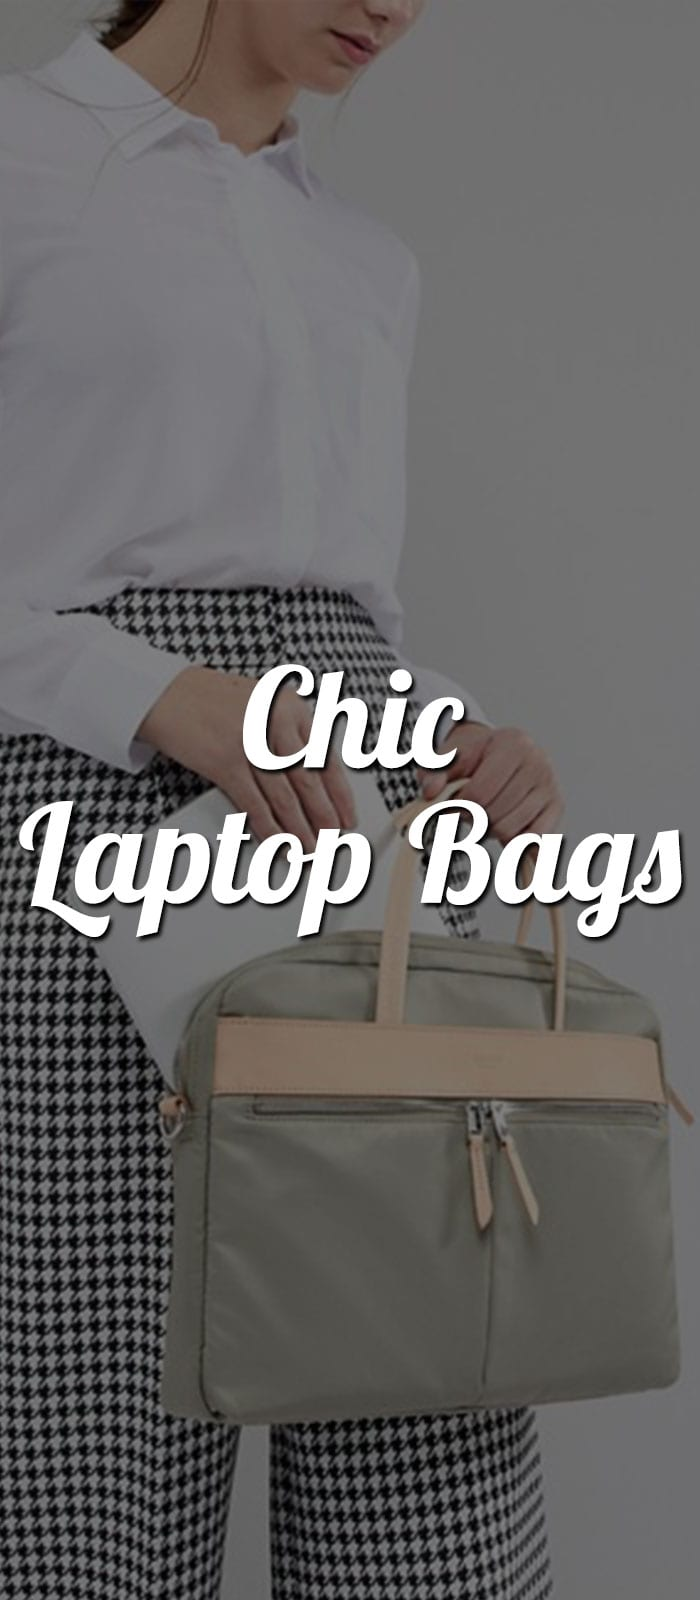 chic laptop bags